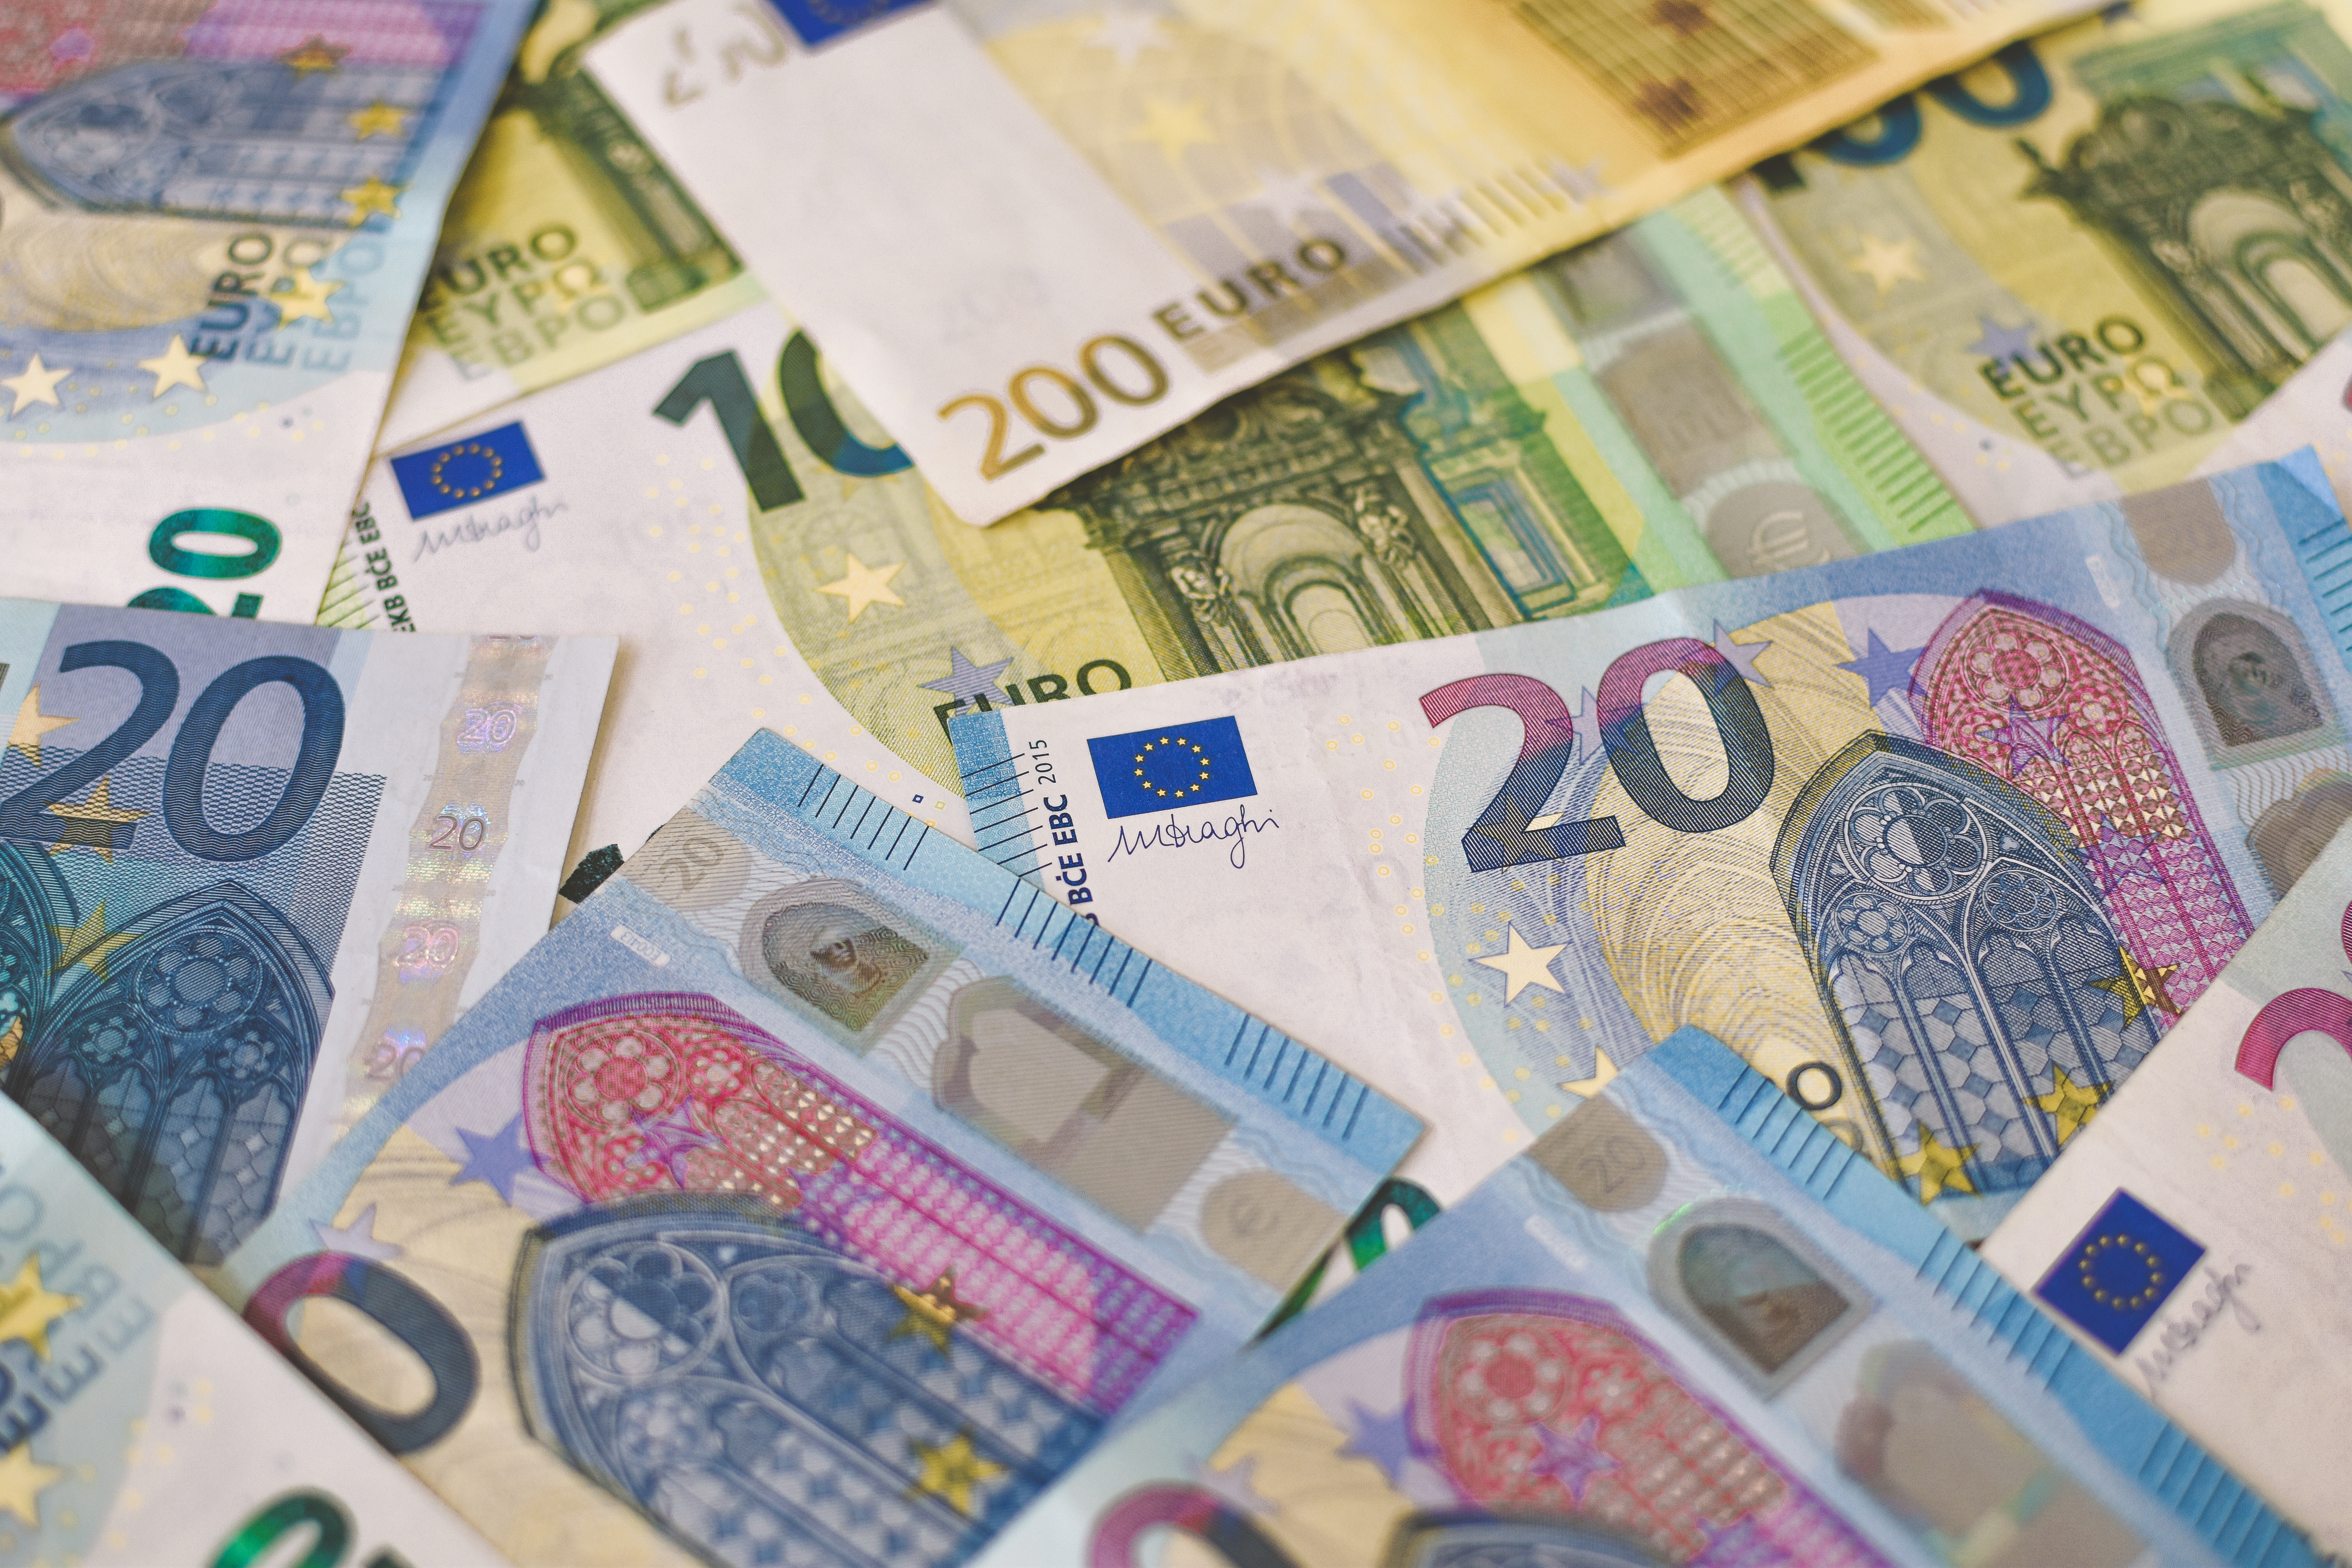 A pile of Euro (EUR) banknotes that include 20, 100, and 200 notes. (Part II)